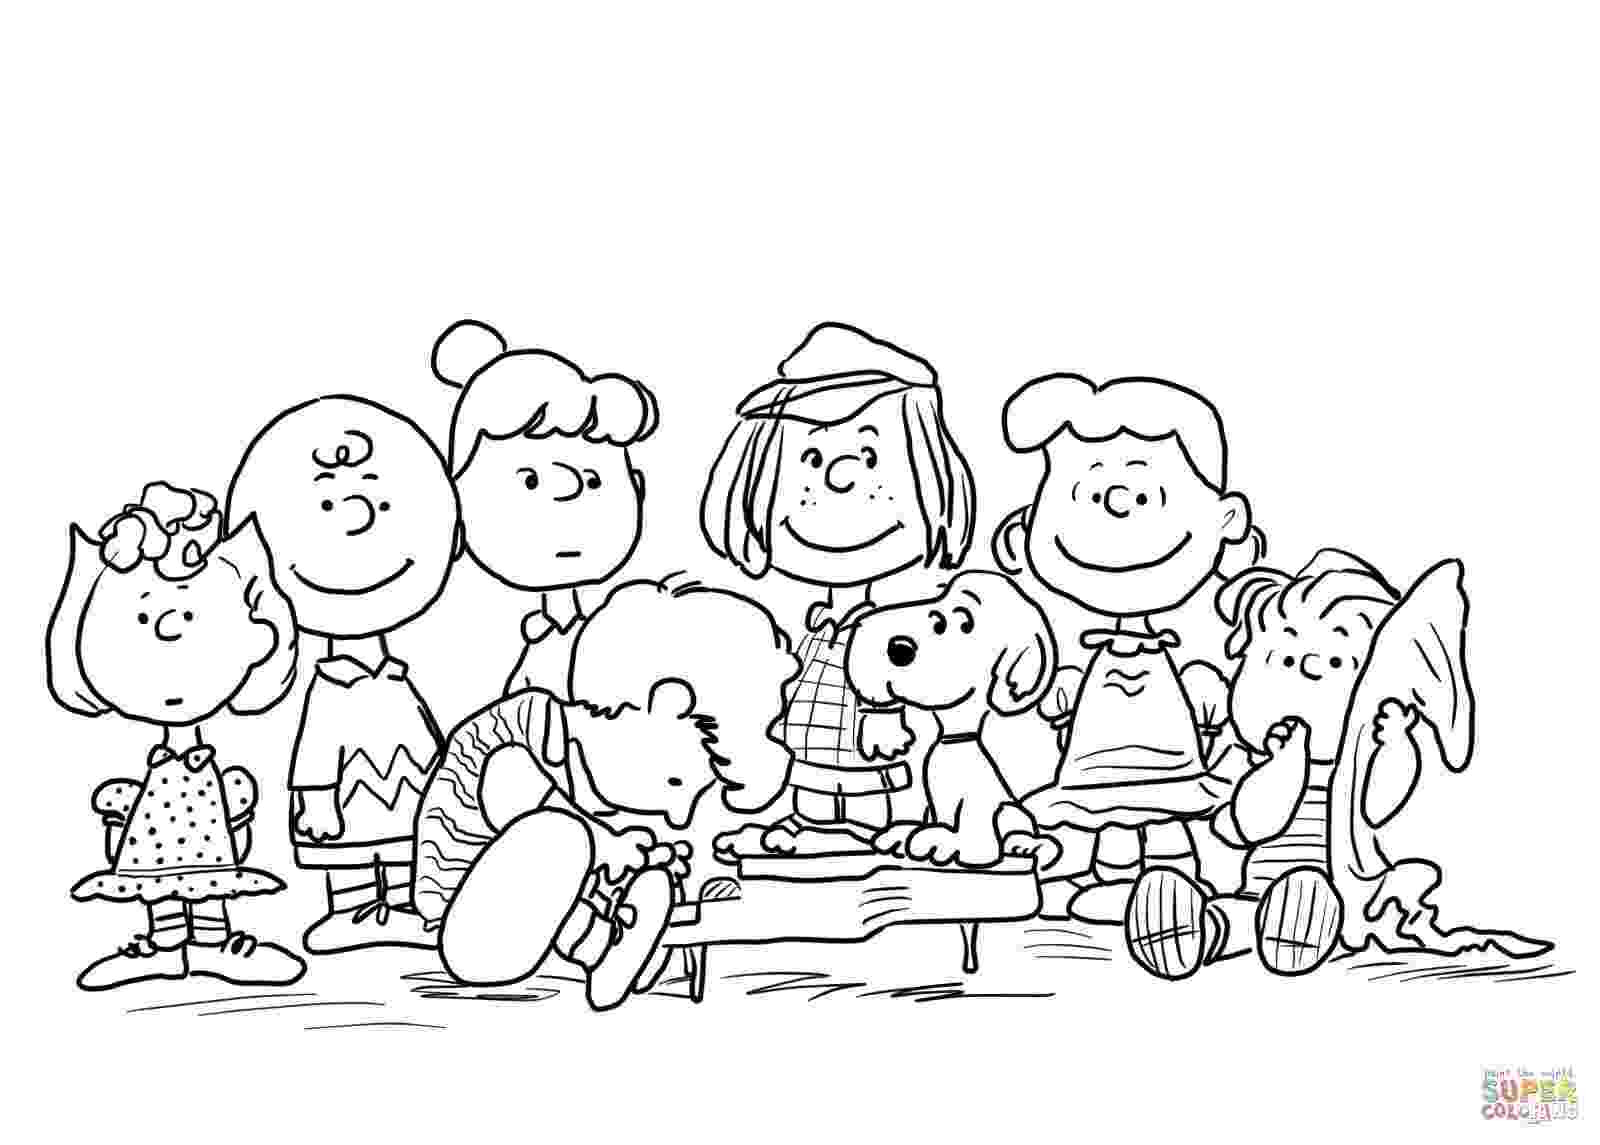 peanuts characters coloring pages linus van pelt peanuts snoopy coloring pages nativity coloring peanuts pages characters